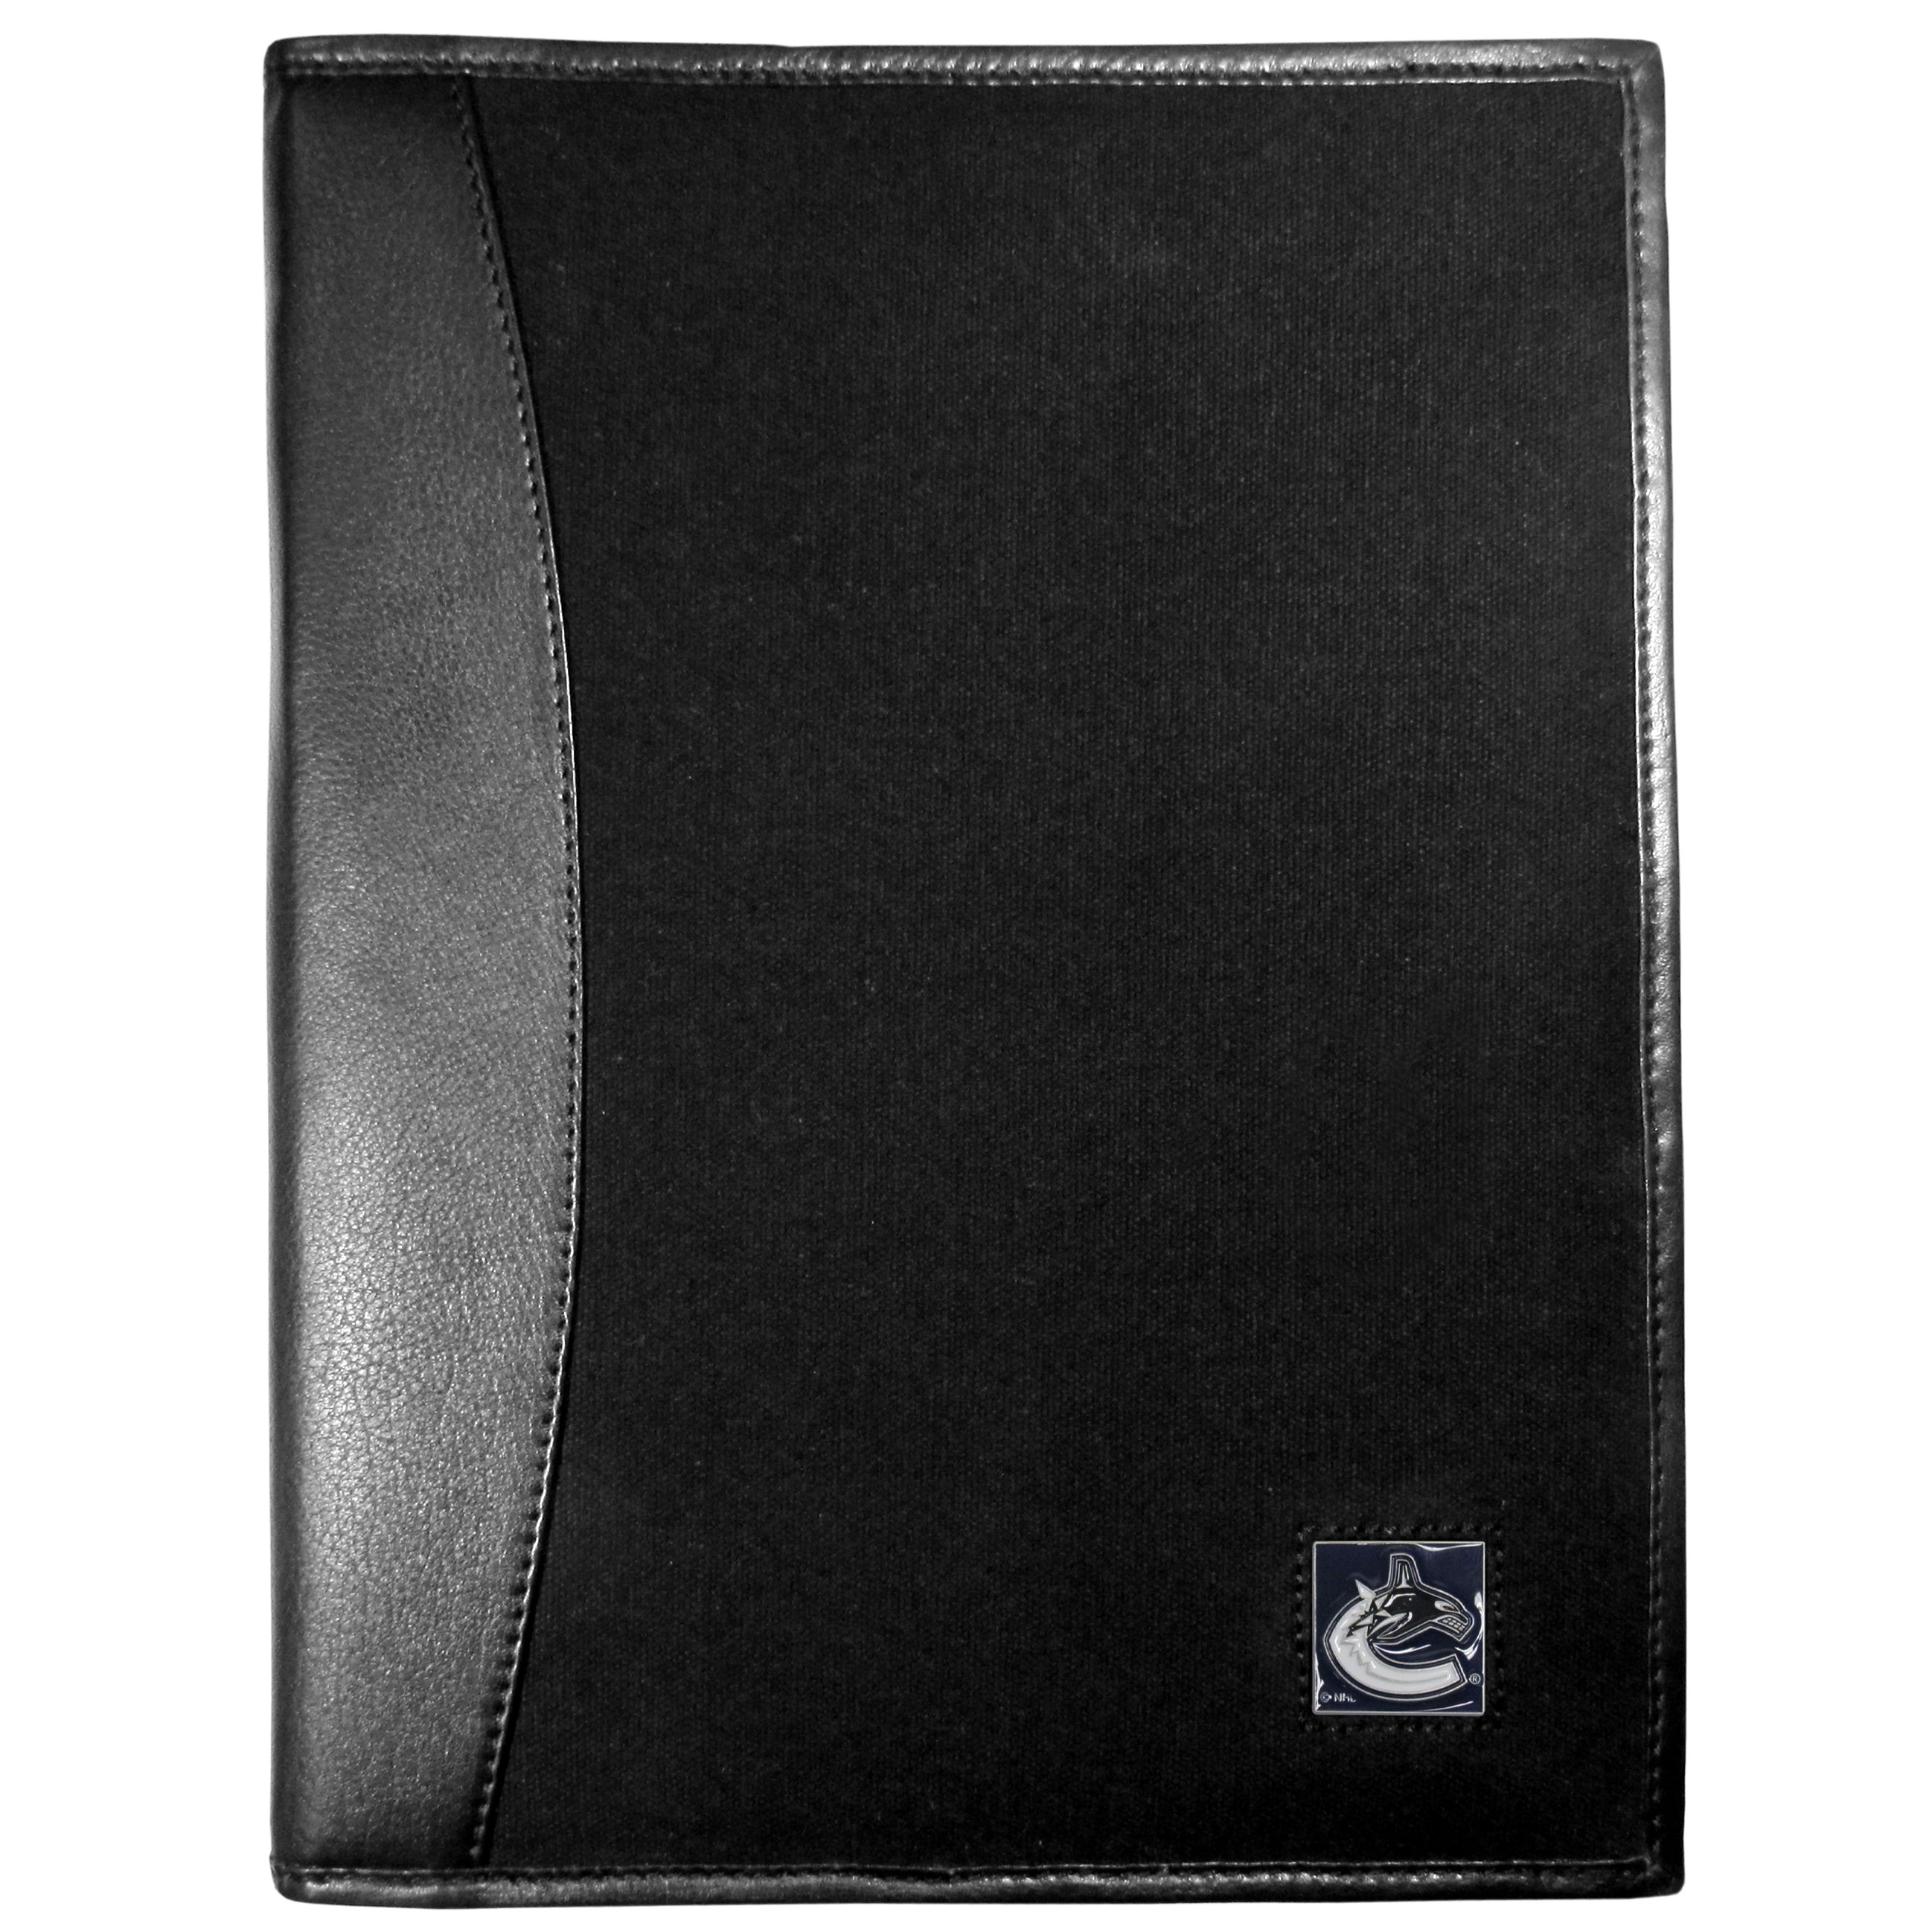 Vancouver Canucks® Leather and Canvas Padfolio - Our leather and canvas padfolio perfectly blends form and function. The attractive portfolio is bound in fine grain leather with an attractive canvas finish and the interior is a soft nylon. This high quality business accessory also features a fully cast metal Vancouver Canucks® emblem that is subtly set in the corner of the organizer. It is packed with features like 6 card slots for badges, business cards, hotel keys or credit cards and ID with a large pocket for loose papers and a writing tablet slot making it a must-have for the professional on the go.